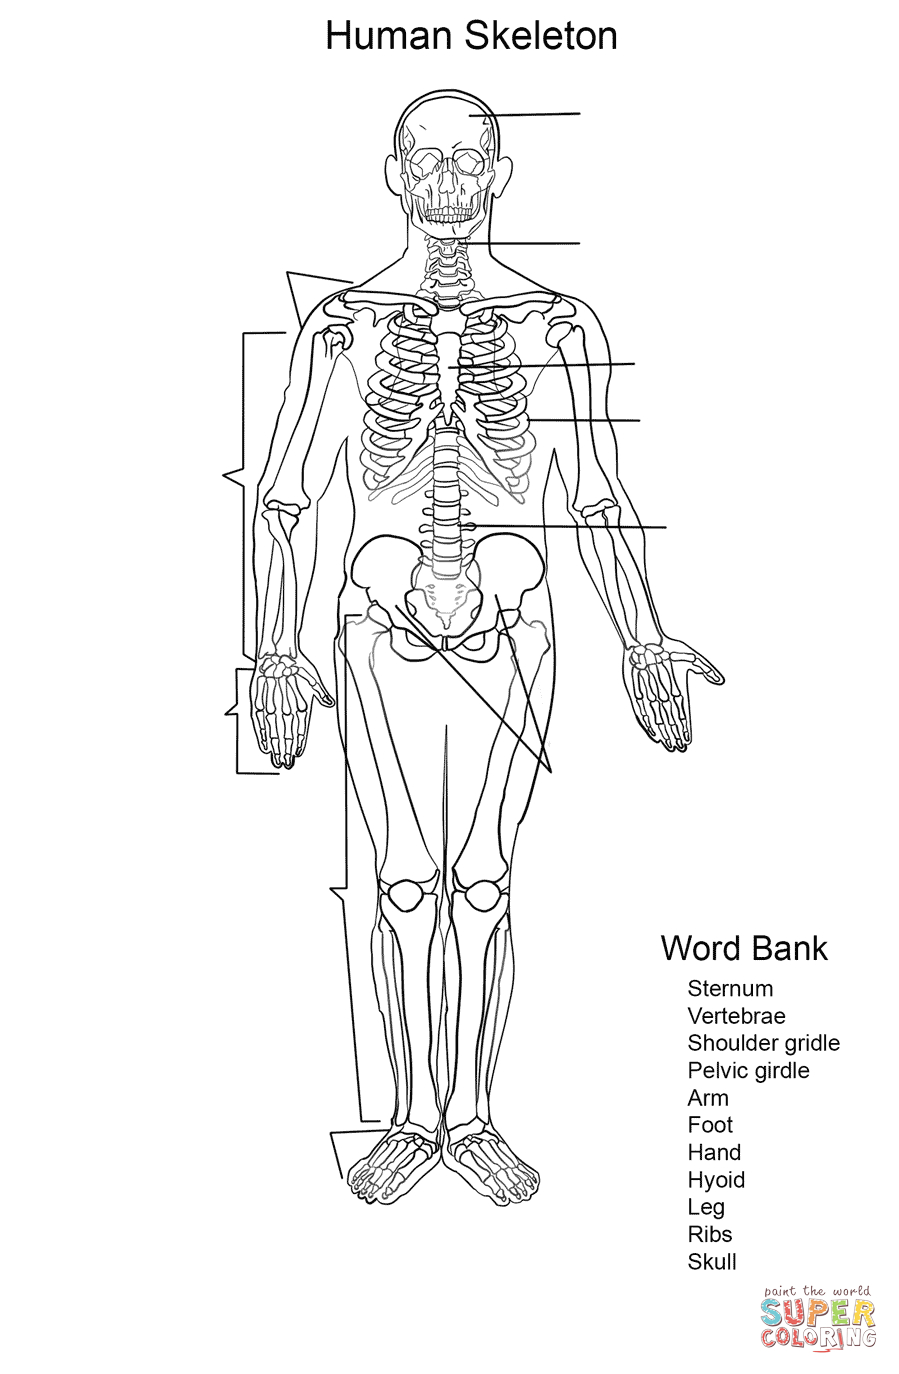 Human Skeleton Worksheet Coloring Page | Free Printable Coloring Pages | Human Skeleton Printable Worksheet